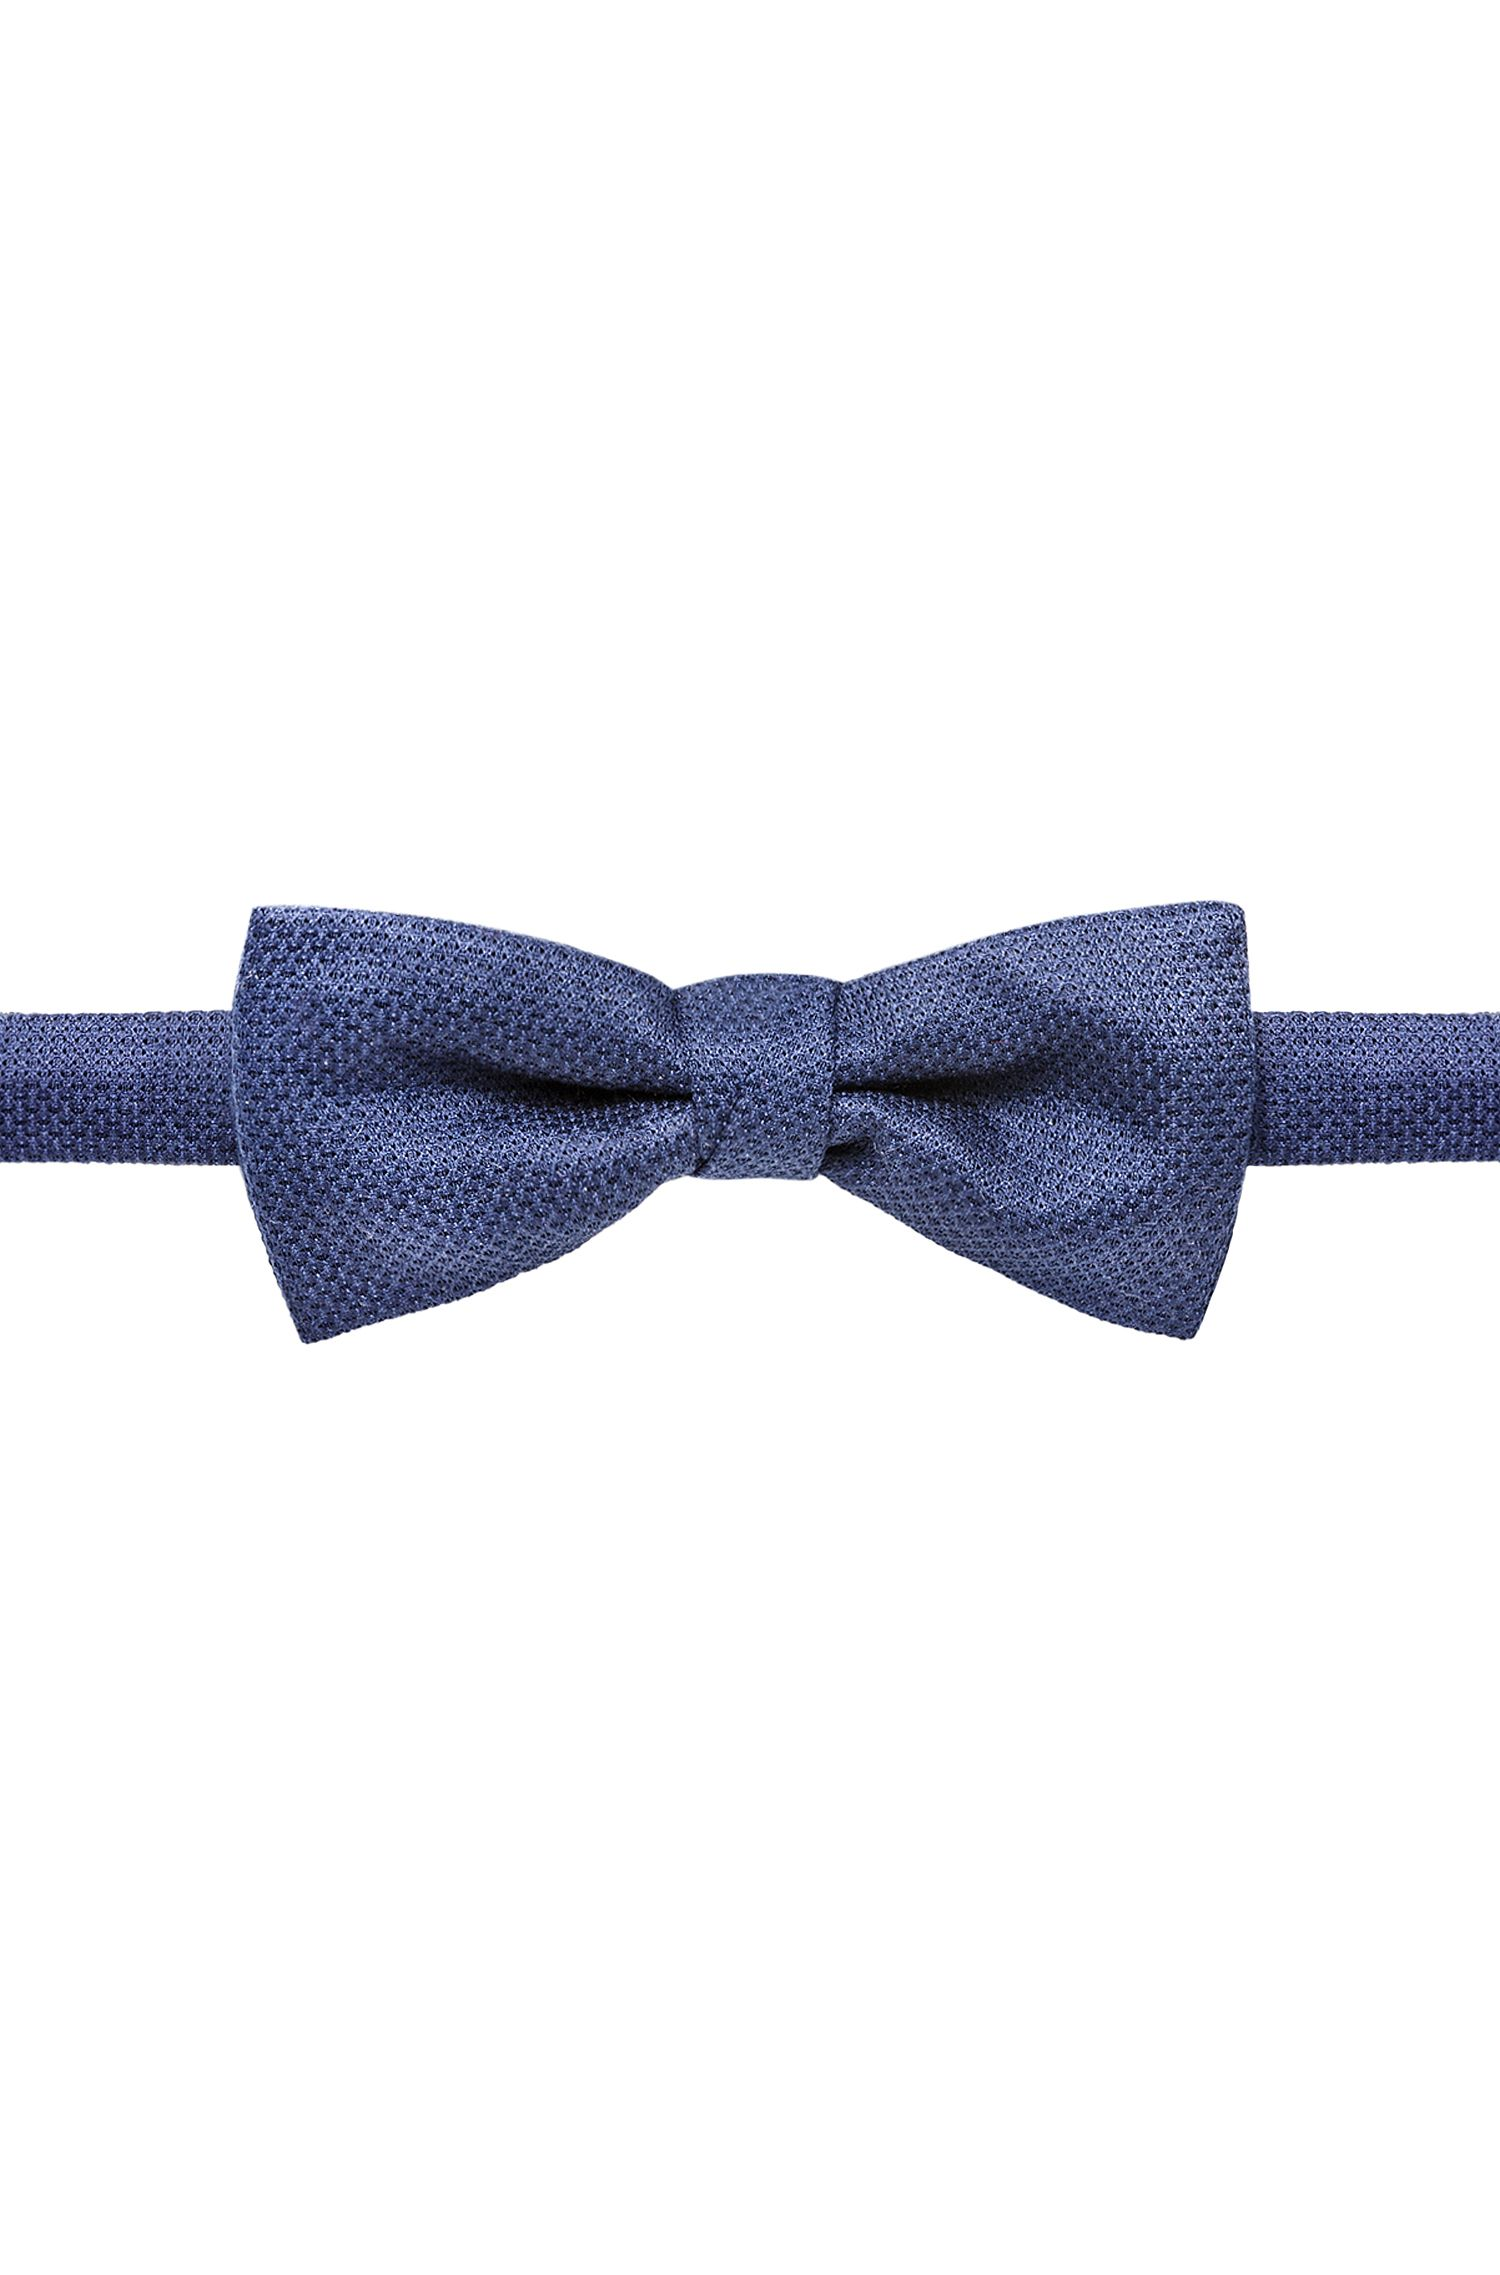 Textured Cotton Bow Tie